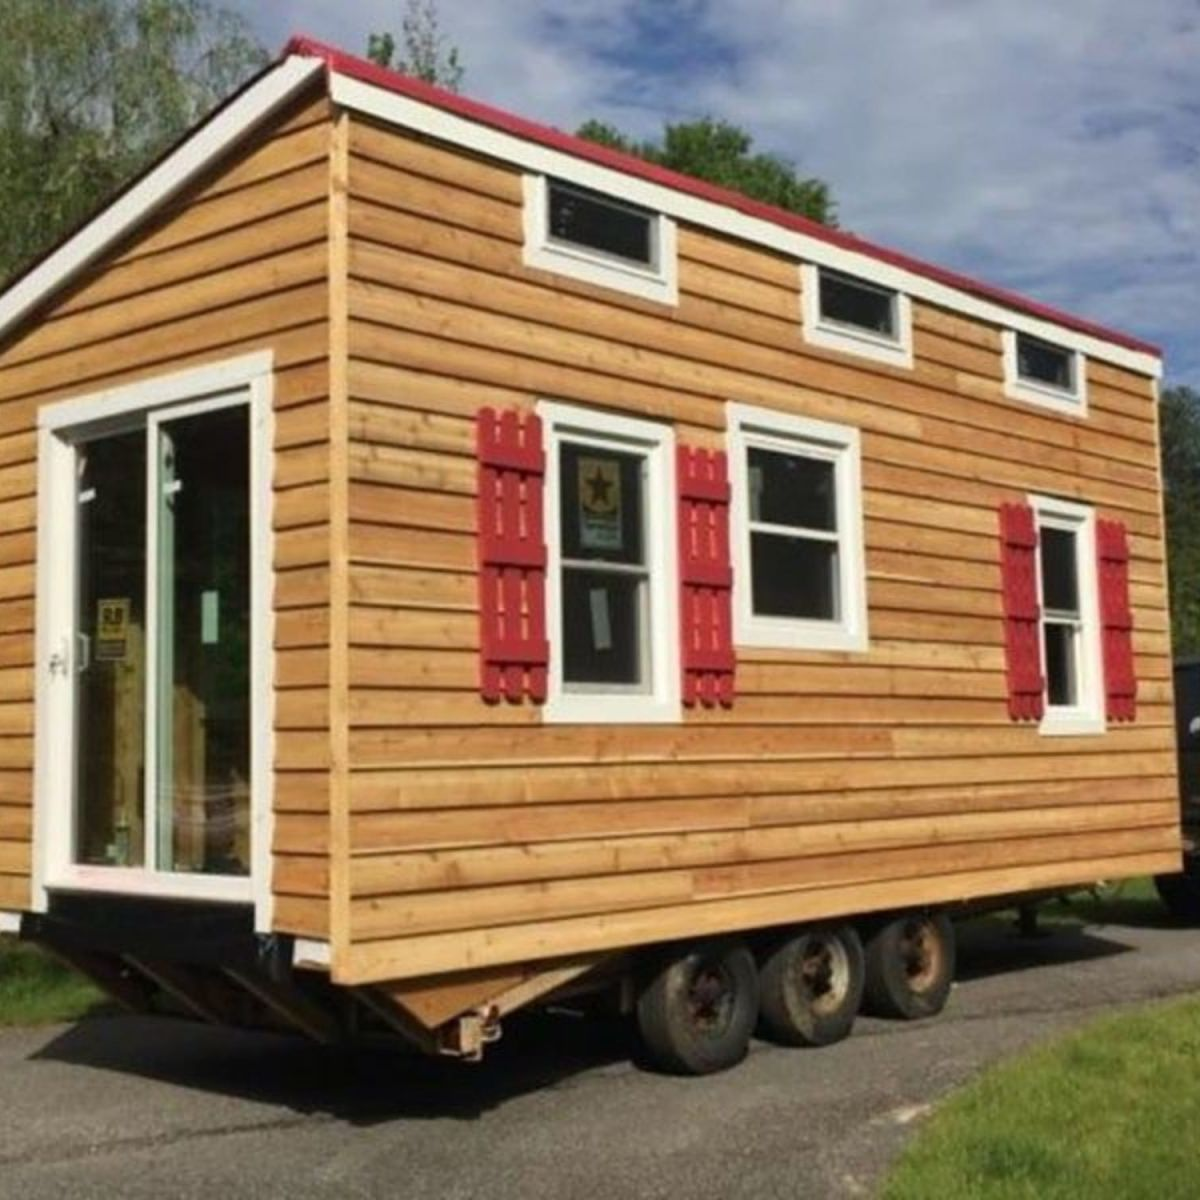 Tiny House For Sale In Chesterfield Tiny House For Sale